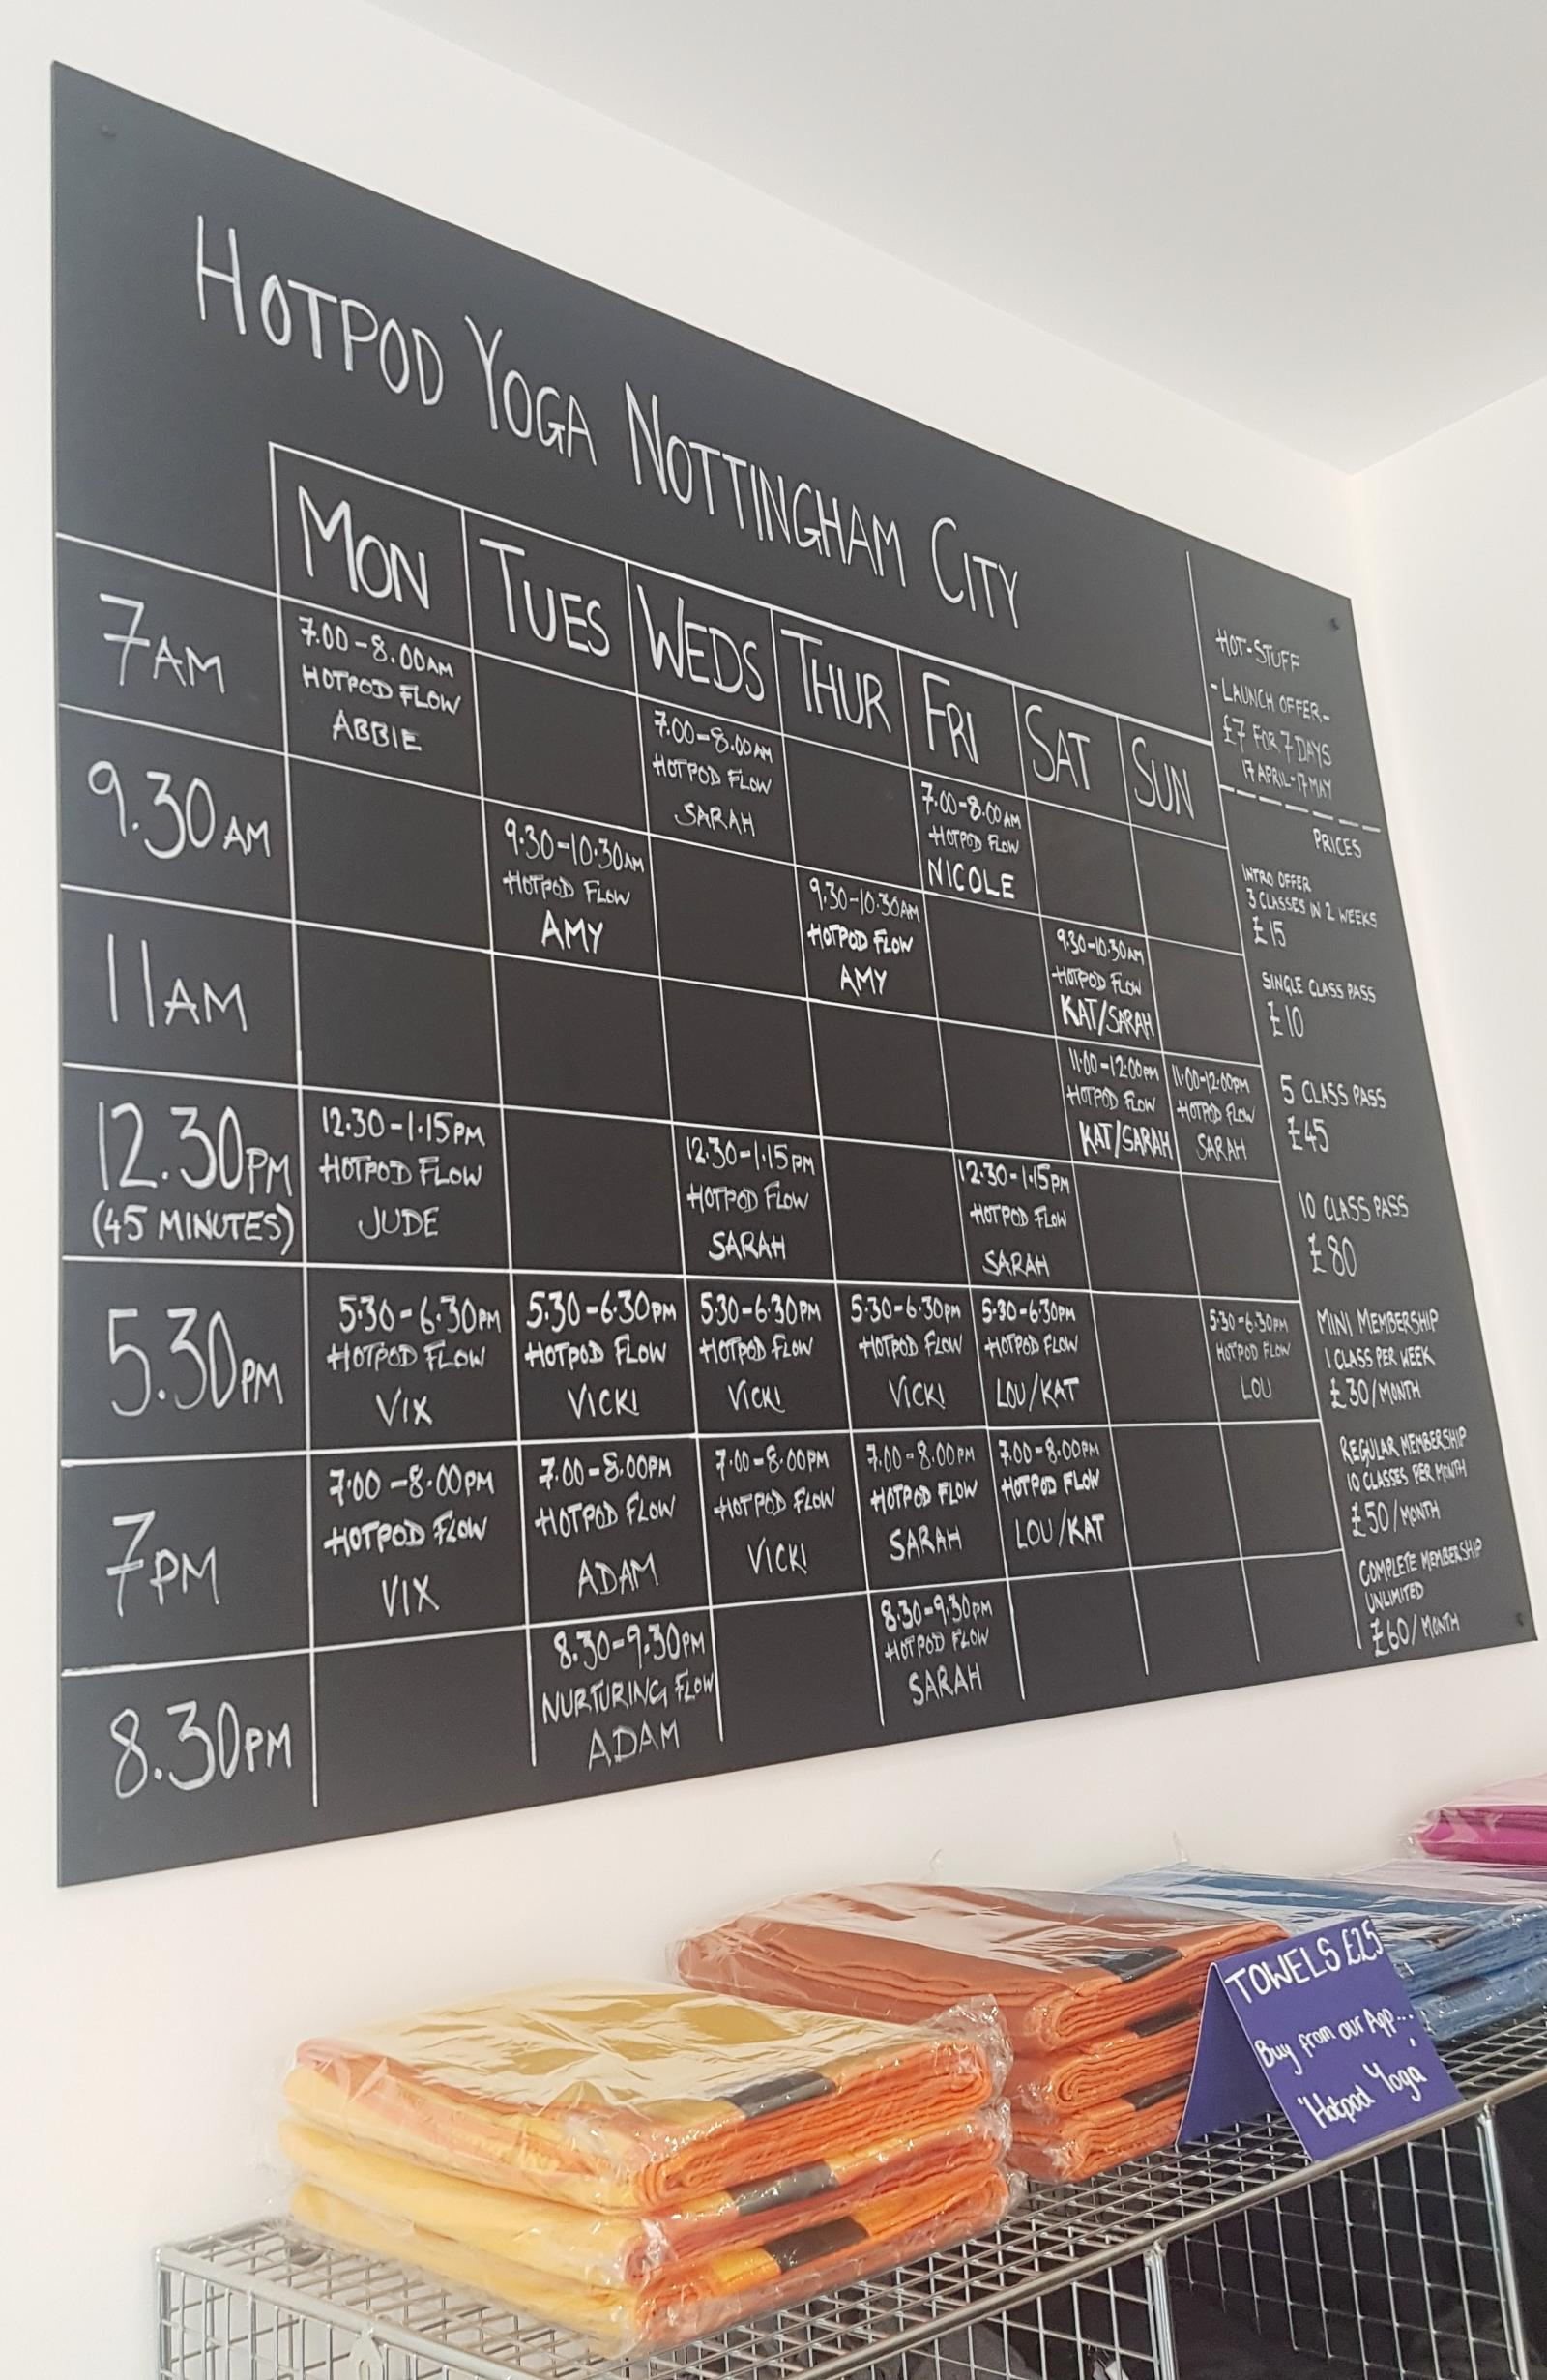 Hot pod yoga nottingham timetable